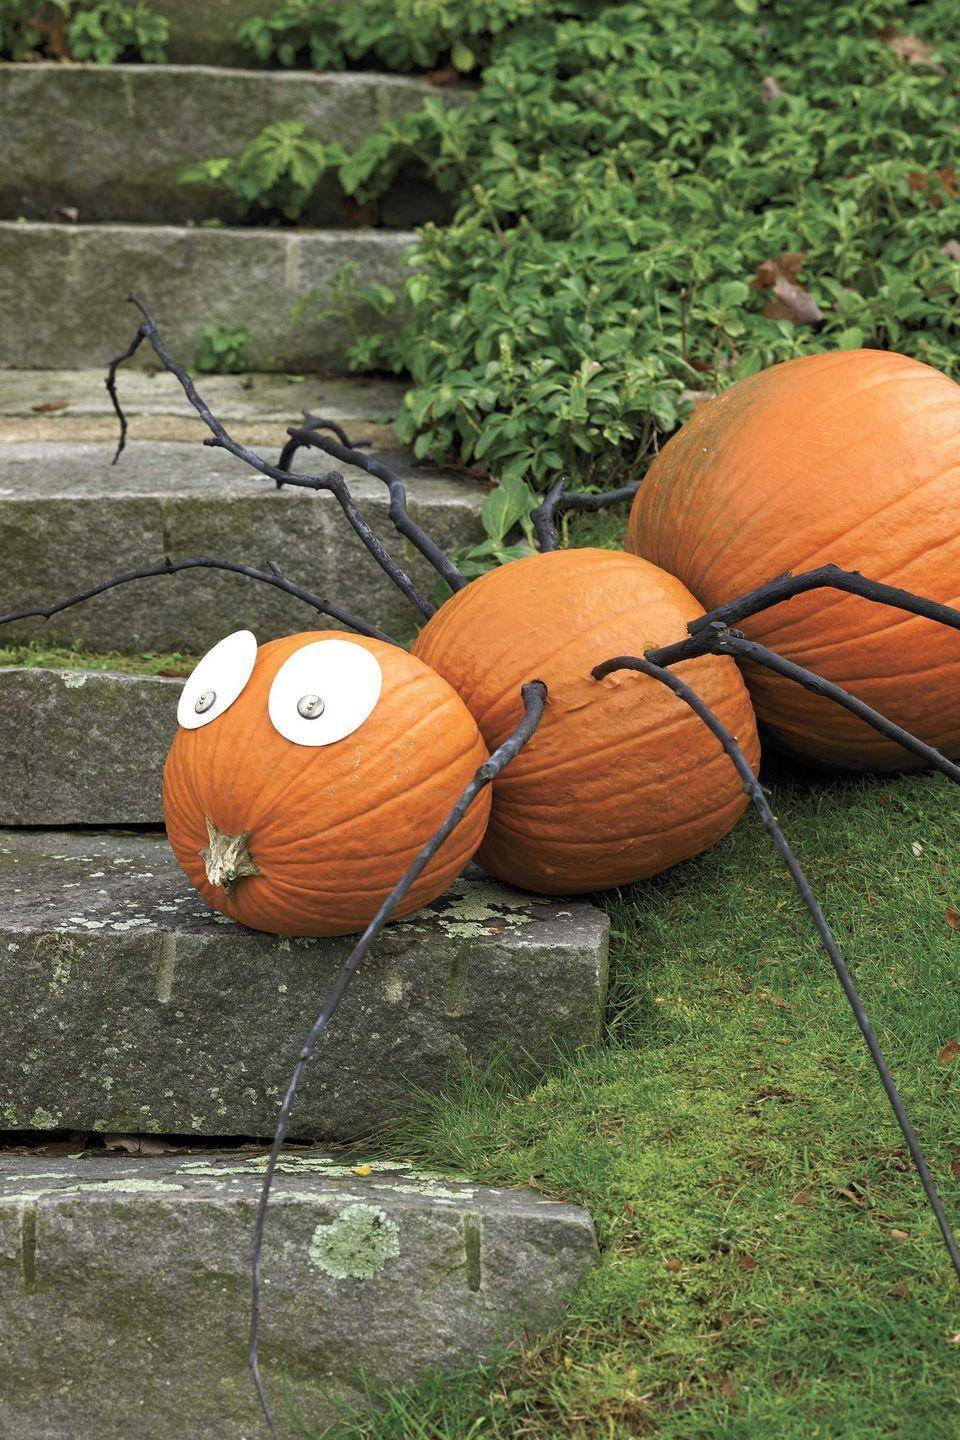 """<p>Turn three gourds on their side to make this spider. Button eyes and branch legs complete the creepy crawly creature.</p><p><strong><em><a href=""""https://www.womansday.com/home/crafts-projects/how-to/a6030/craft-project-spindly-spider-123878/"""" rel=""""nofollow noopener"""" target=""""_blank"""" data-ylk=""""slk:Get the Spindly Spider tutorial."""" class=""""link rapid-noclick-resp"""">Get the Spindly Spider tutorial.</a></em></strong></p>"""